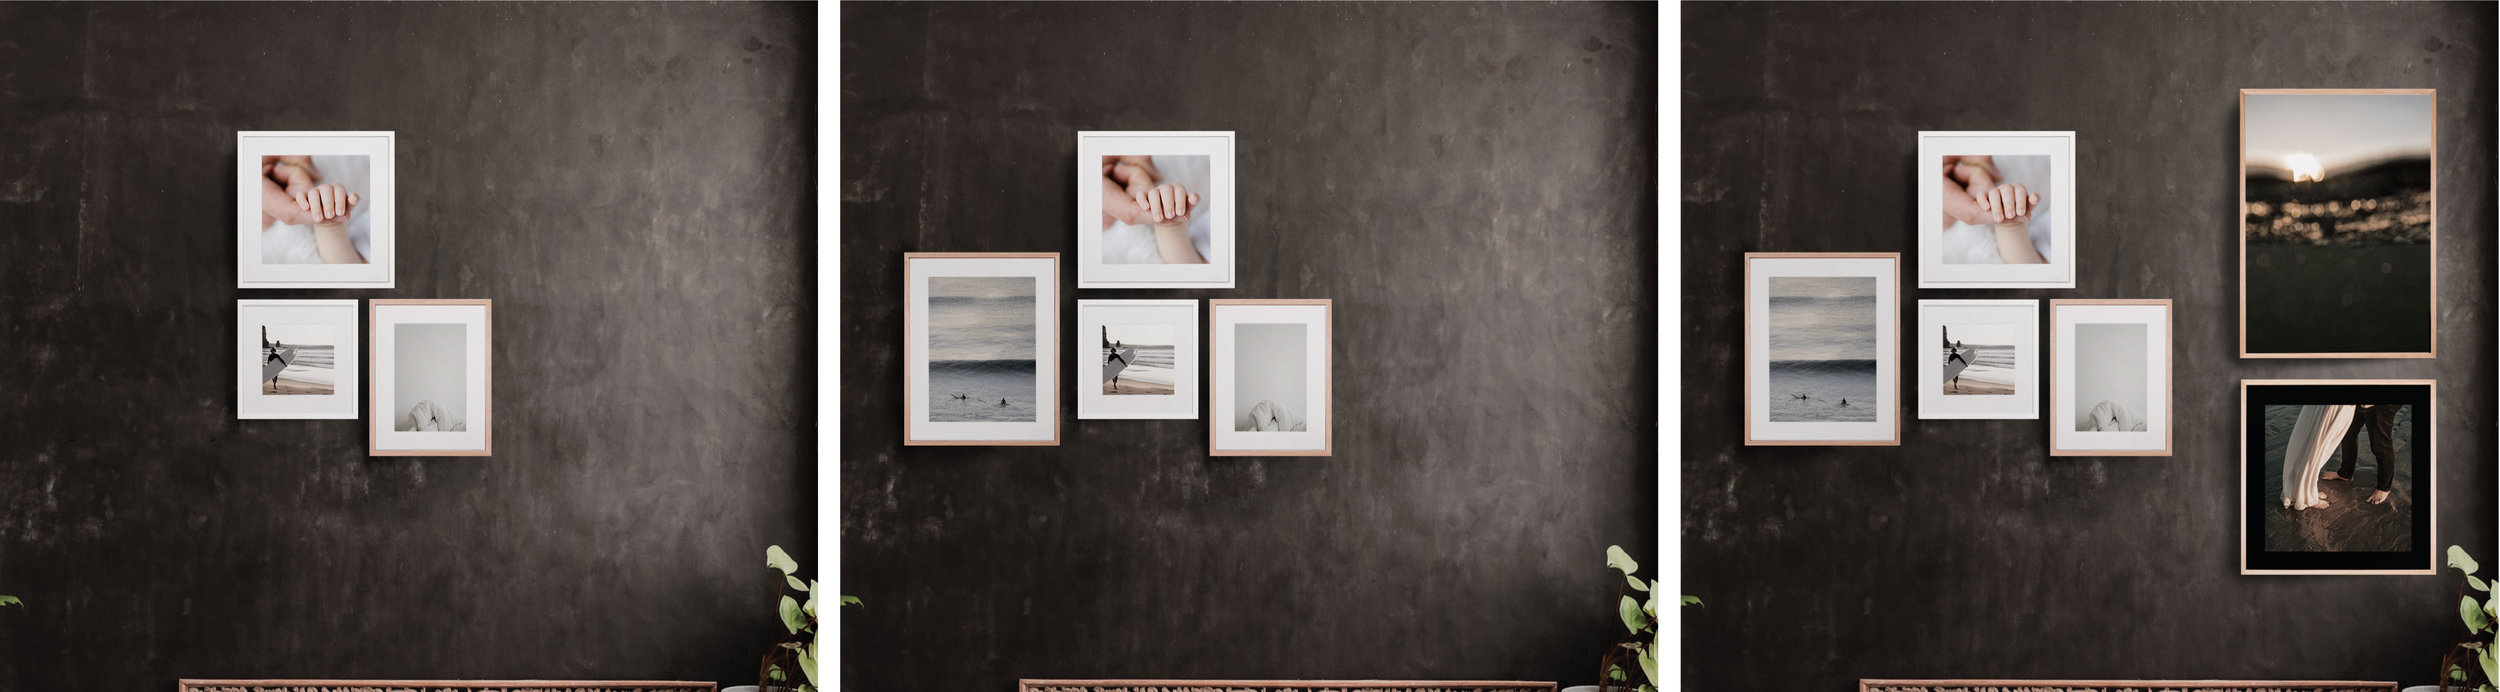 Start imagine and let it grow over time. Simply mix and match to create your most personal photo wall: Choose between full bleed or white/black passepartout. From a tiny delicacy in 30x30cm to the majestic 50x70cm and everything in between.